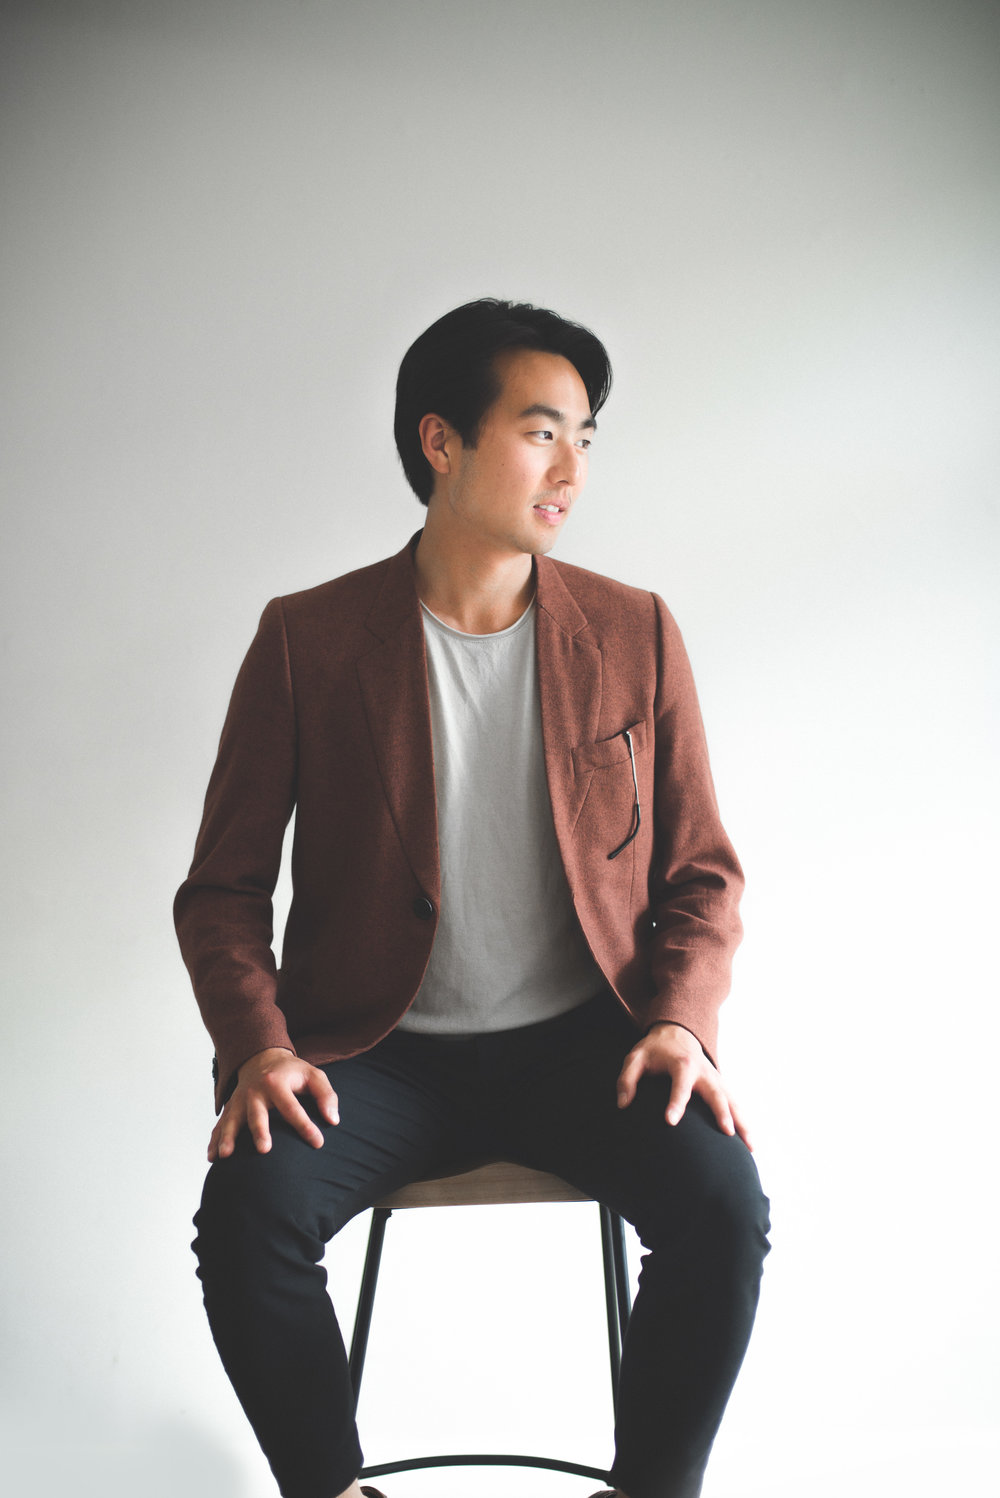 Juno Lee - Co-Founder (Business)Juno's background is in entrepreneurship through starting his own business at 18 -- manufacturing and distributing packaged F&B products in the US. He also worked in the music entertainment industry in Tokyo, releasing a self-produced single album with Lastrum Music Group at 17. Juno is currently concluding a management degree at the University of St Andrews, where he met Alex.South Korean by birth, Juno has spent numerous years both living and studying in Tokyo, Japan and Vermont, USA.juno@combinico.com